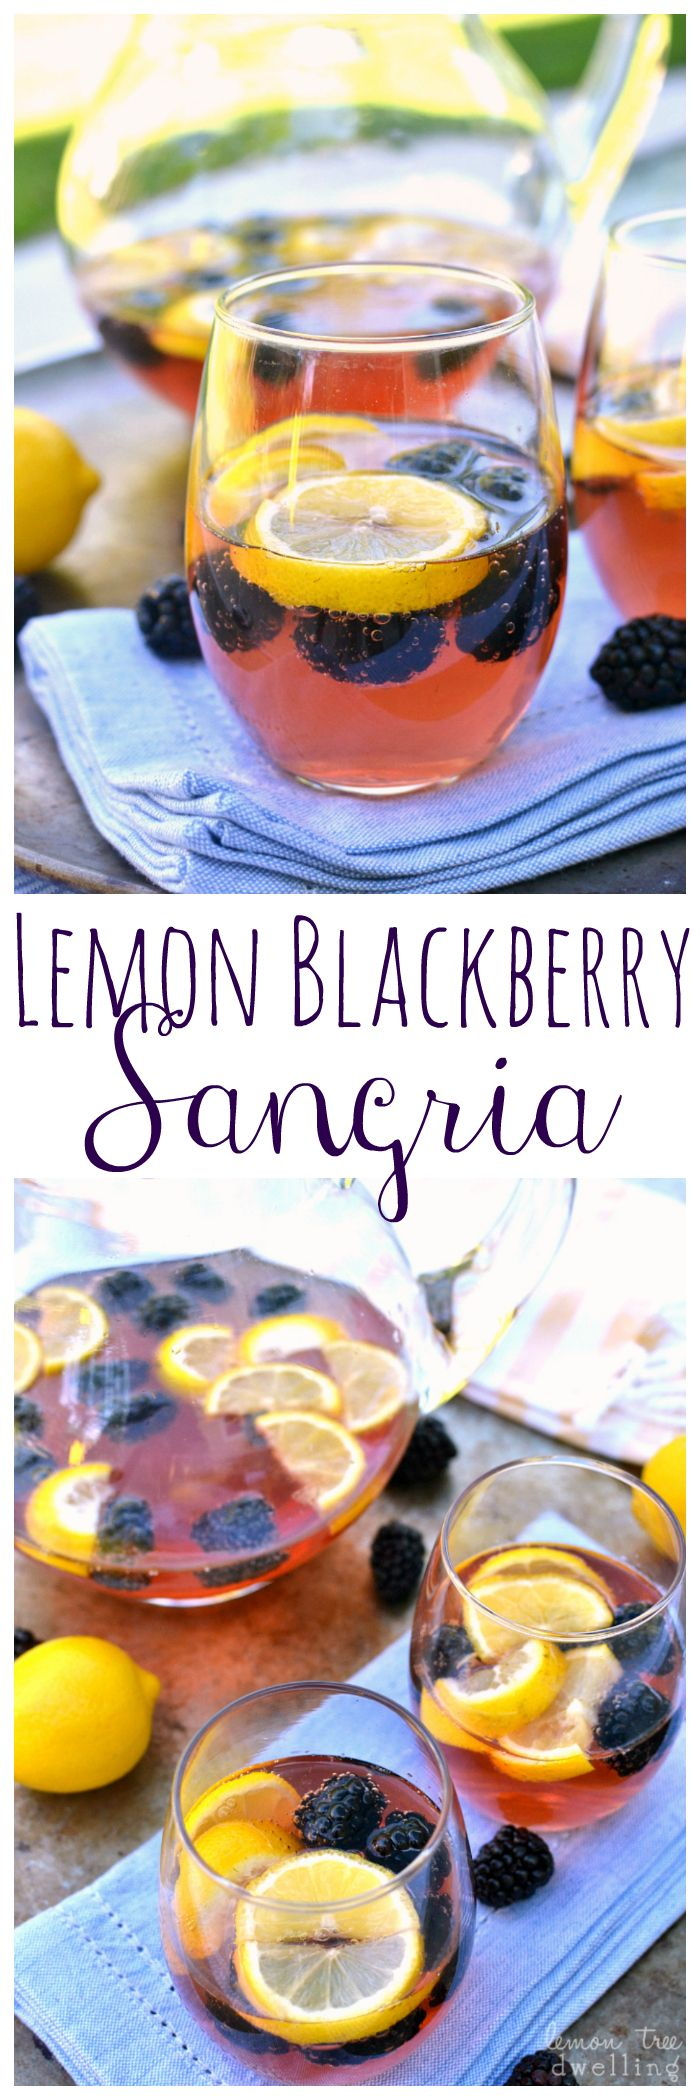 Lemon Blackberry Sangria Blackberry Sangria Sangria Sangria